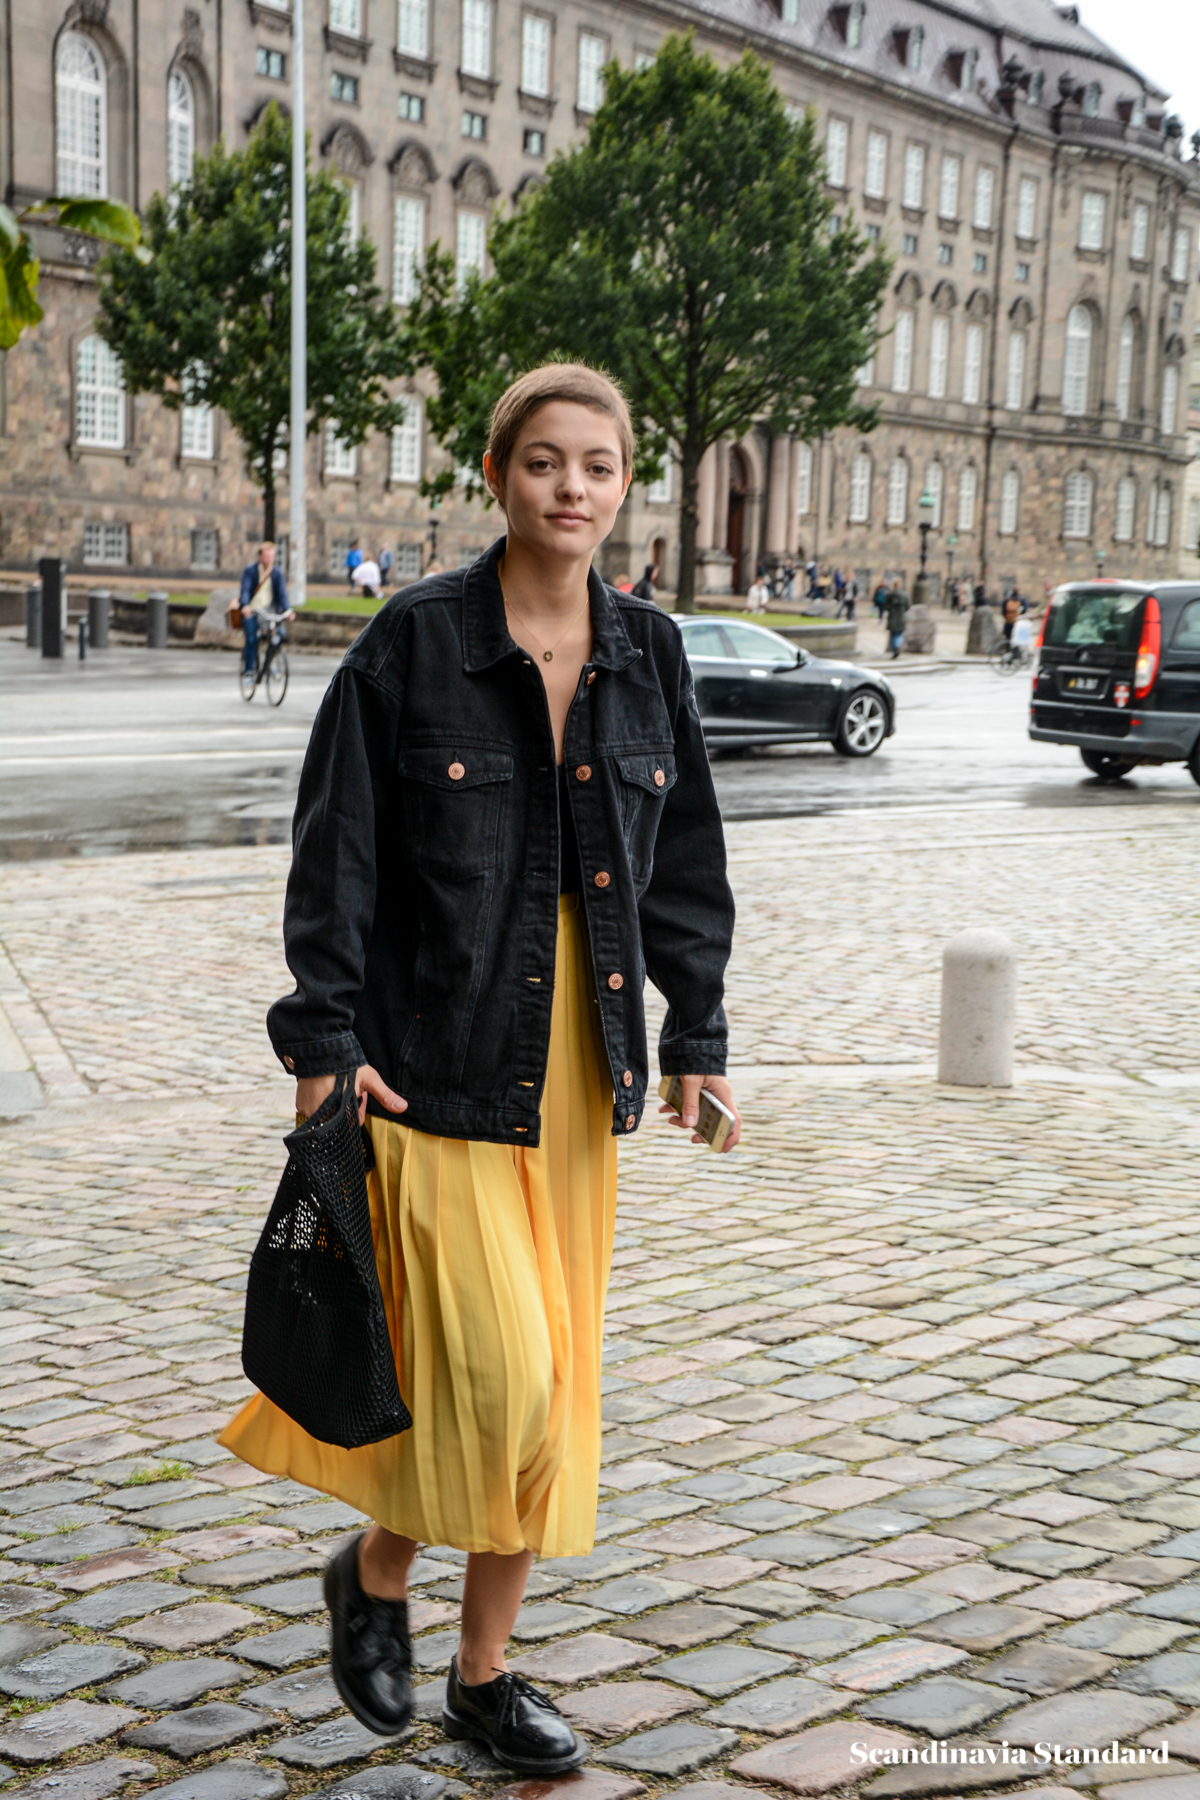 The Best Copenhagen Fashion Week Street Style Ss17 Scandinavia Standard Dsc 6242